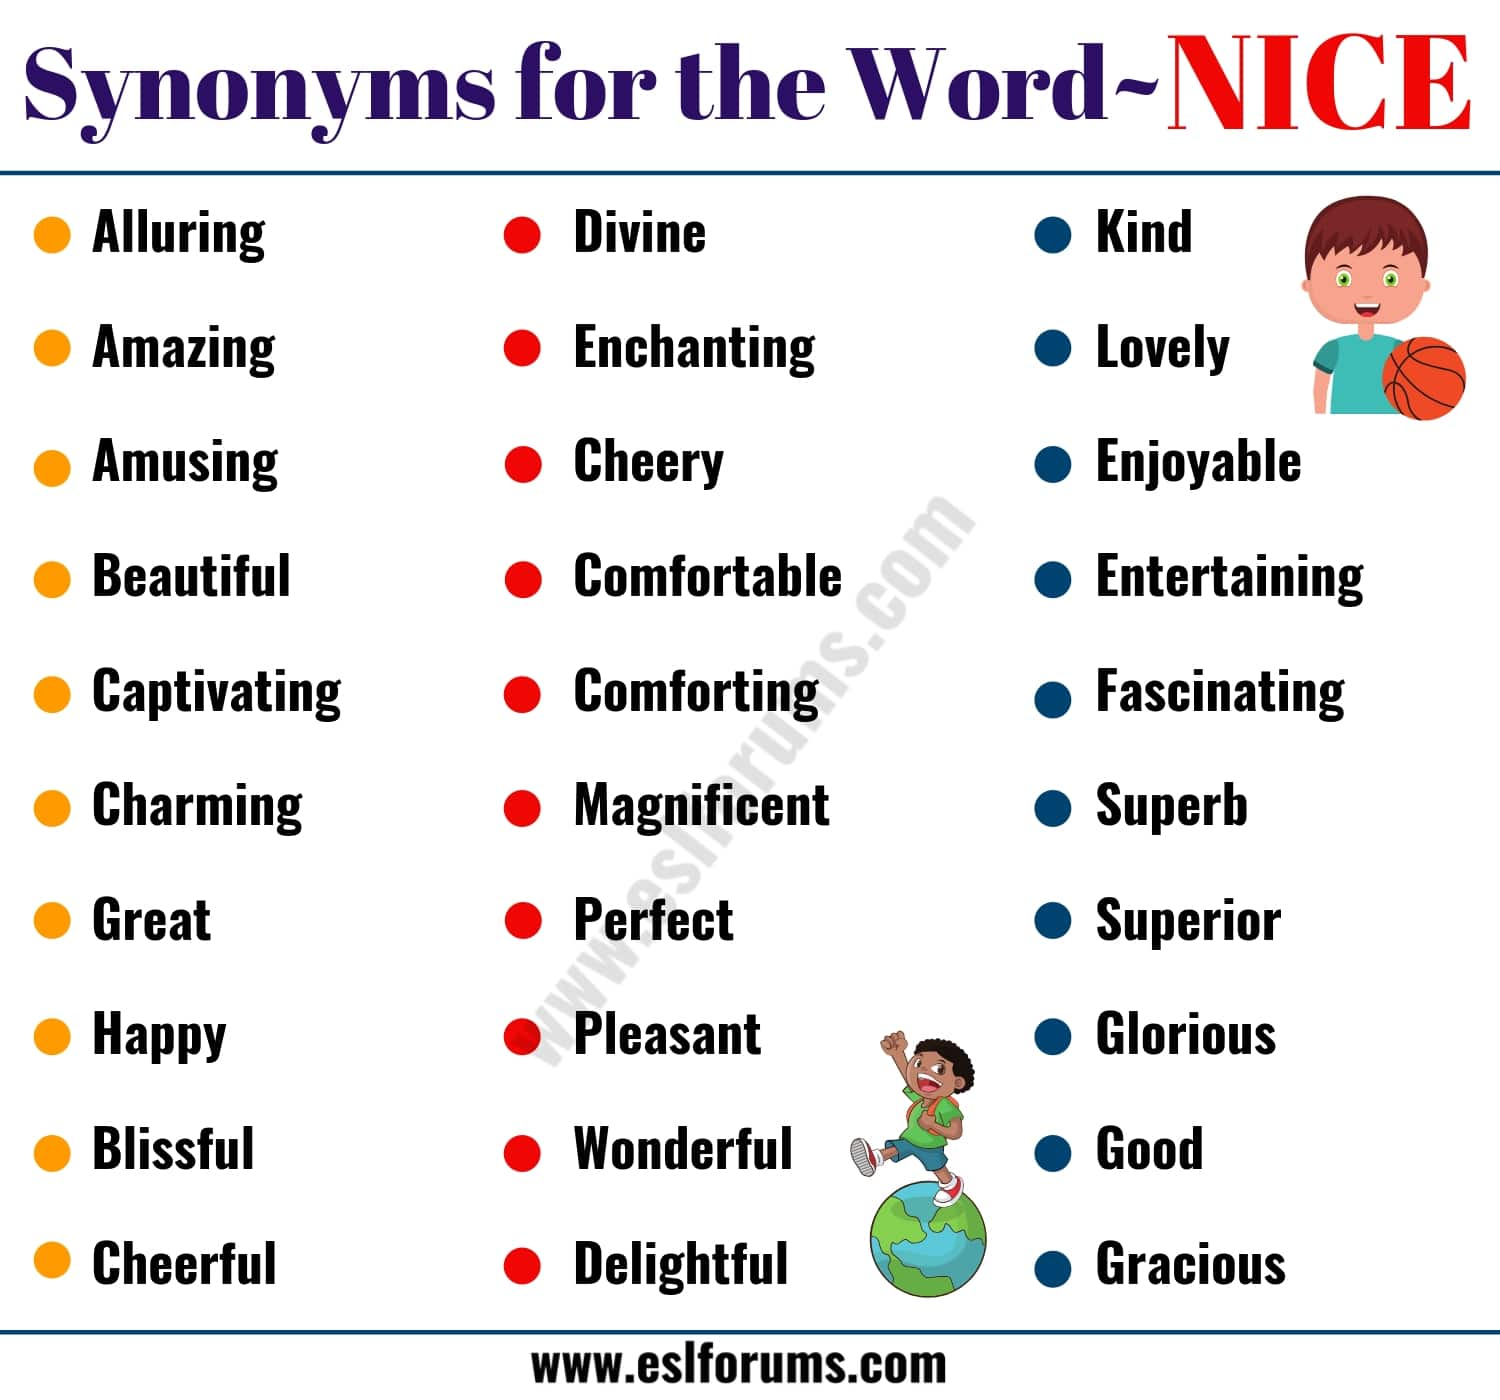 Words to Use Instead of NICE: 50 Useful Synonyms for NICE with Examples